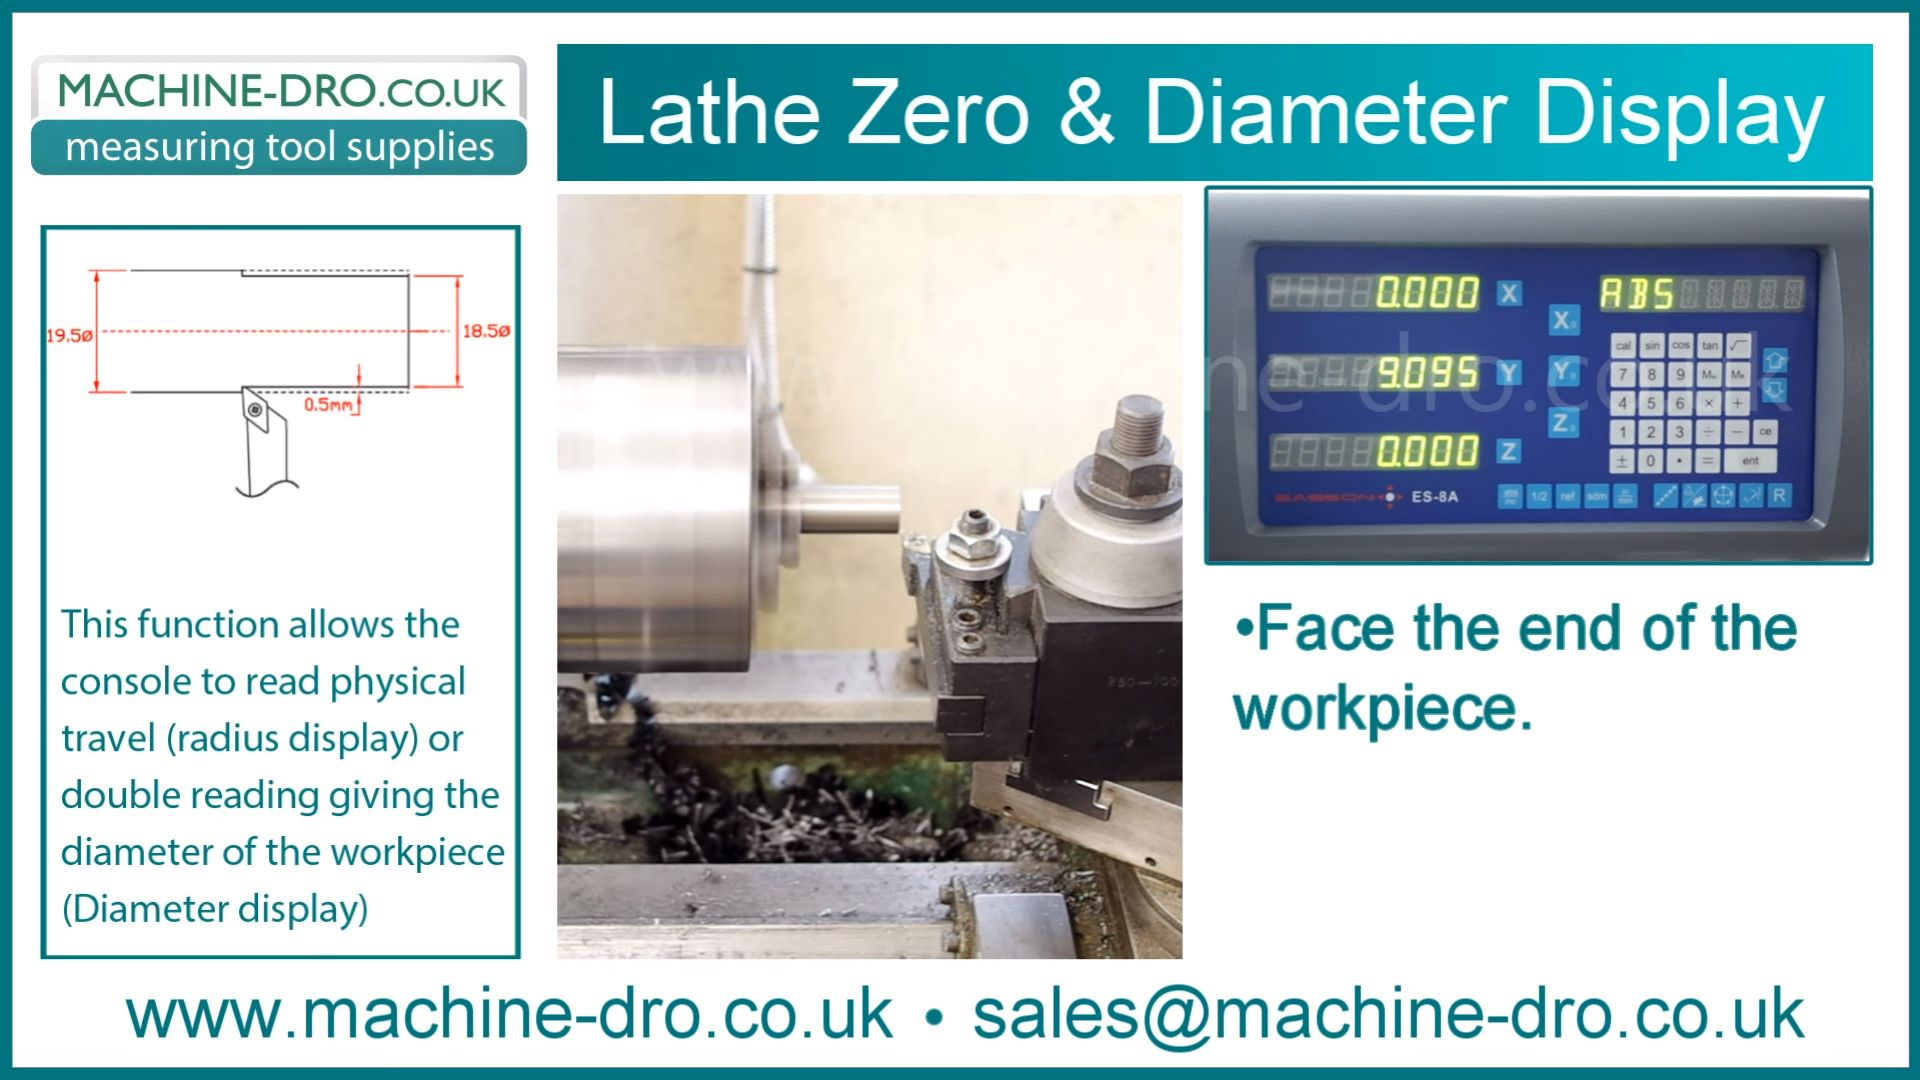 Lathe Zero and Diameter Display